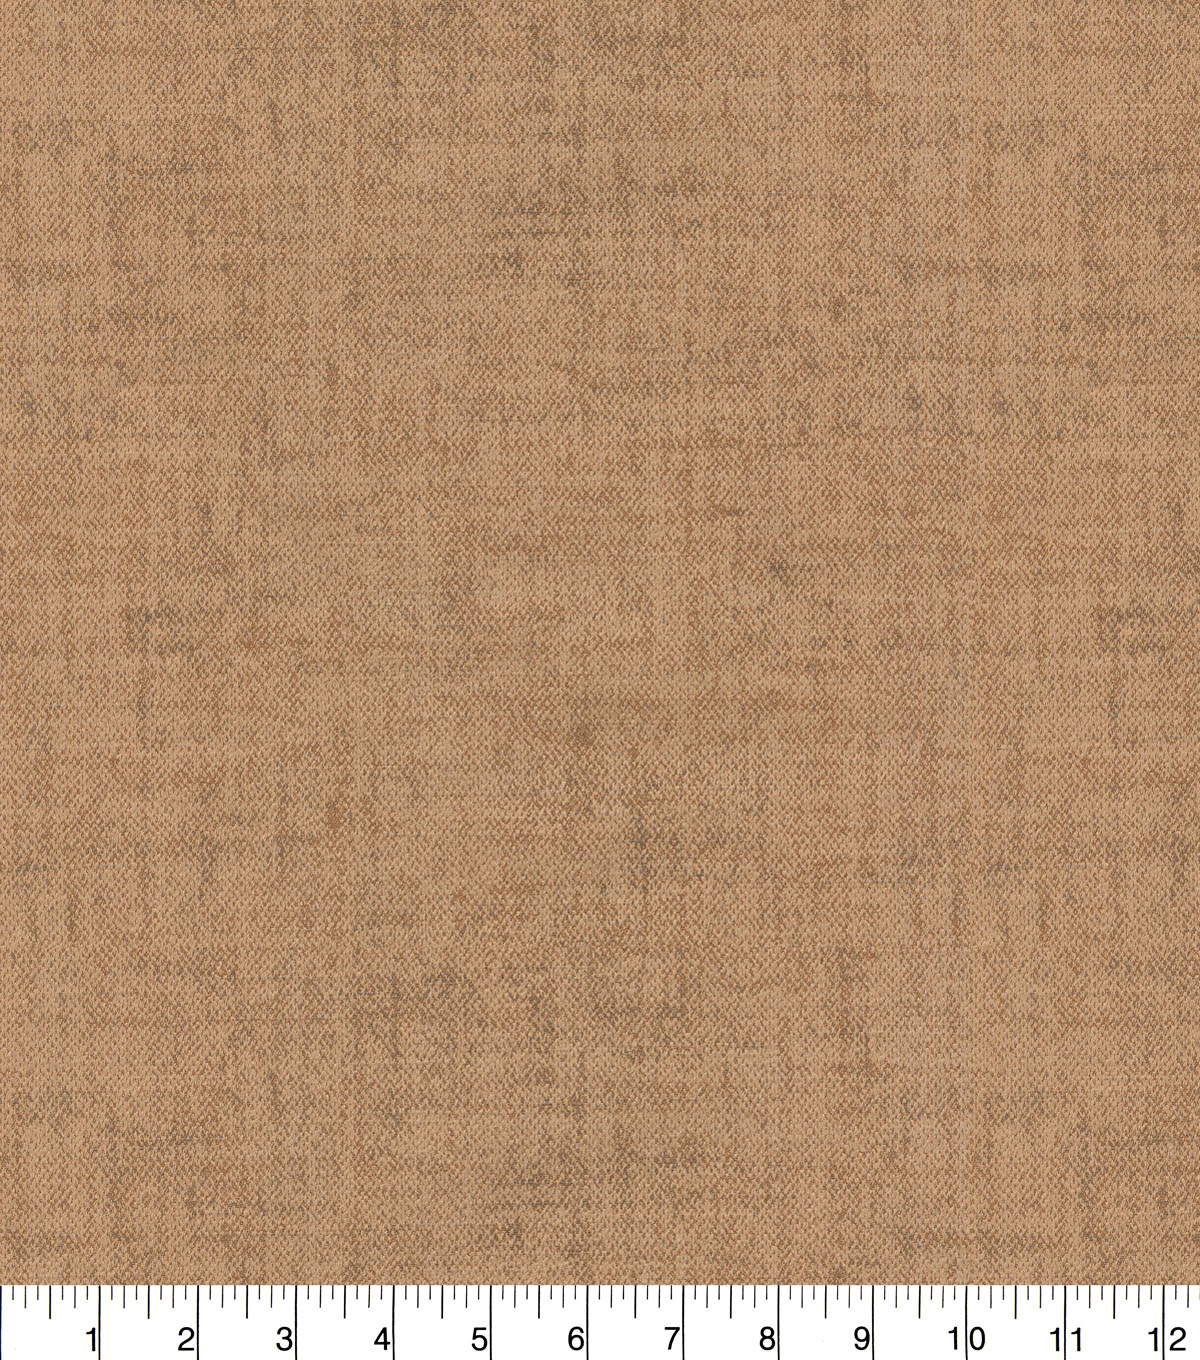 Home Decor 8\u0022x8\u0022 Fabric Swatch-P/K Lifestyles Exposure Chestnut